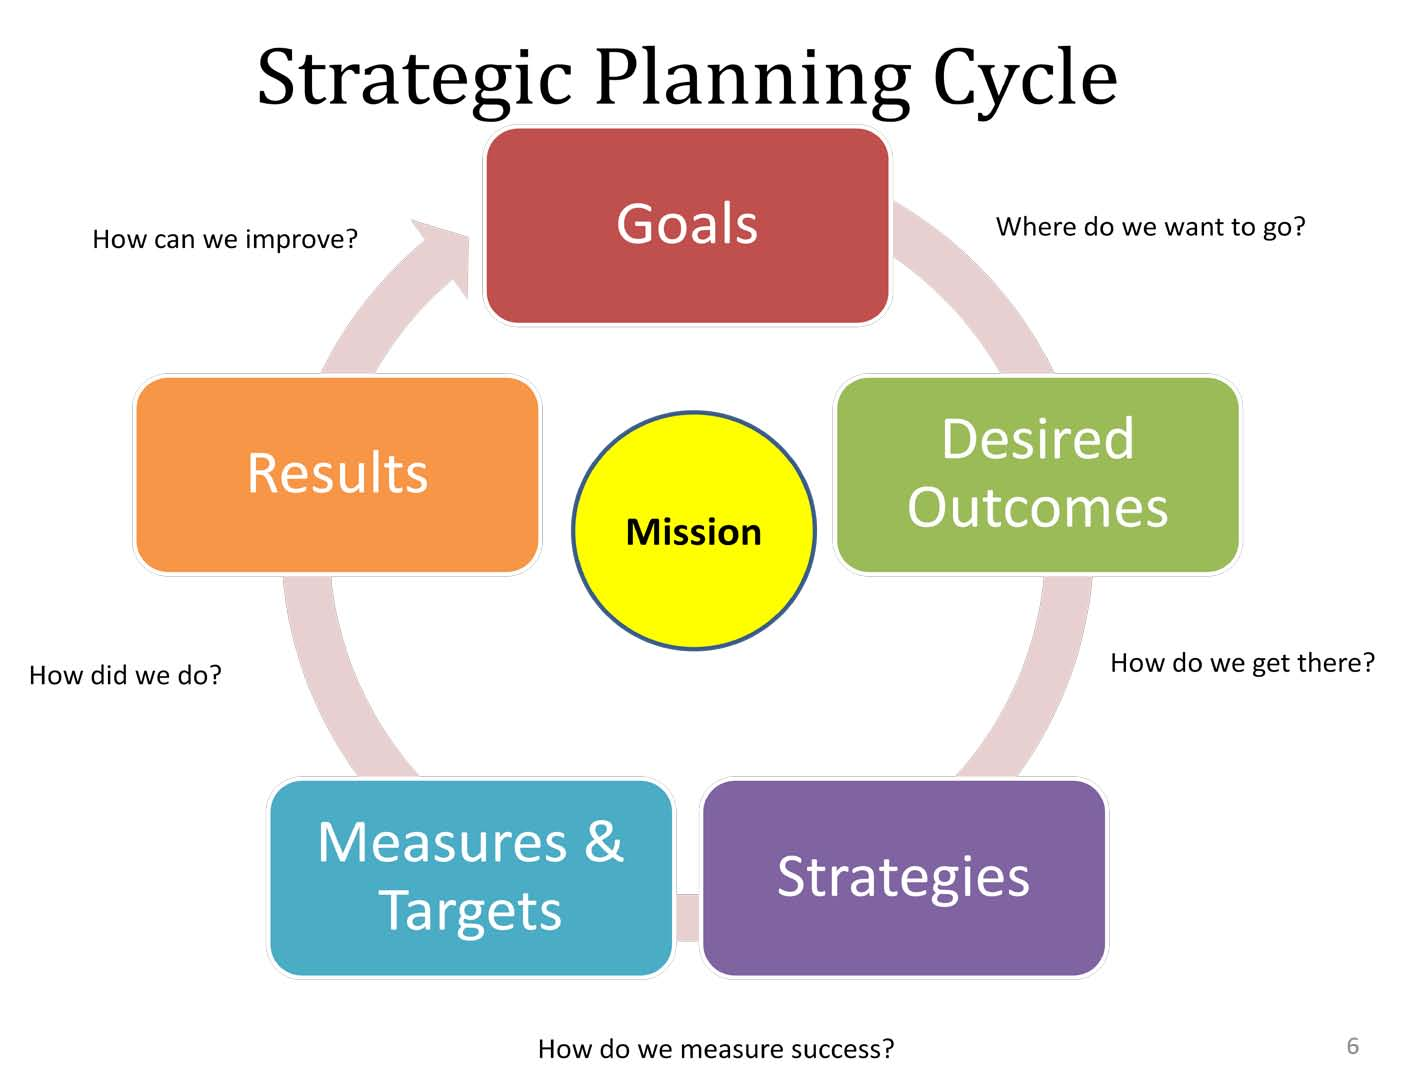 organization marketing process Transformation planning is a process of developing a [strategic] plan for modifying an enterprise s business processes through the modification of policies, procedures, and processes to move the organization from an 'as is' state to a 'to be' state.